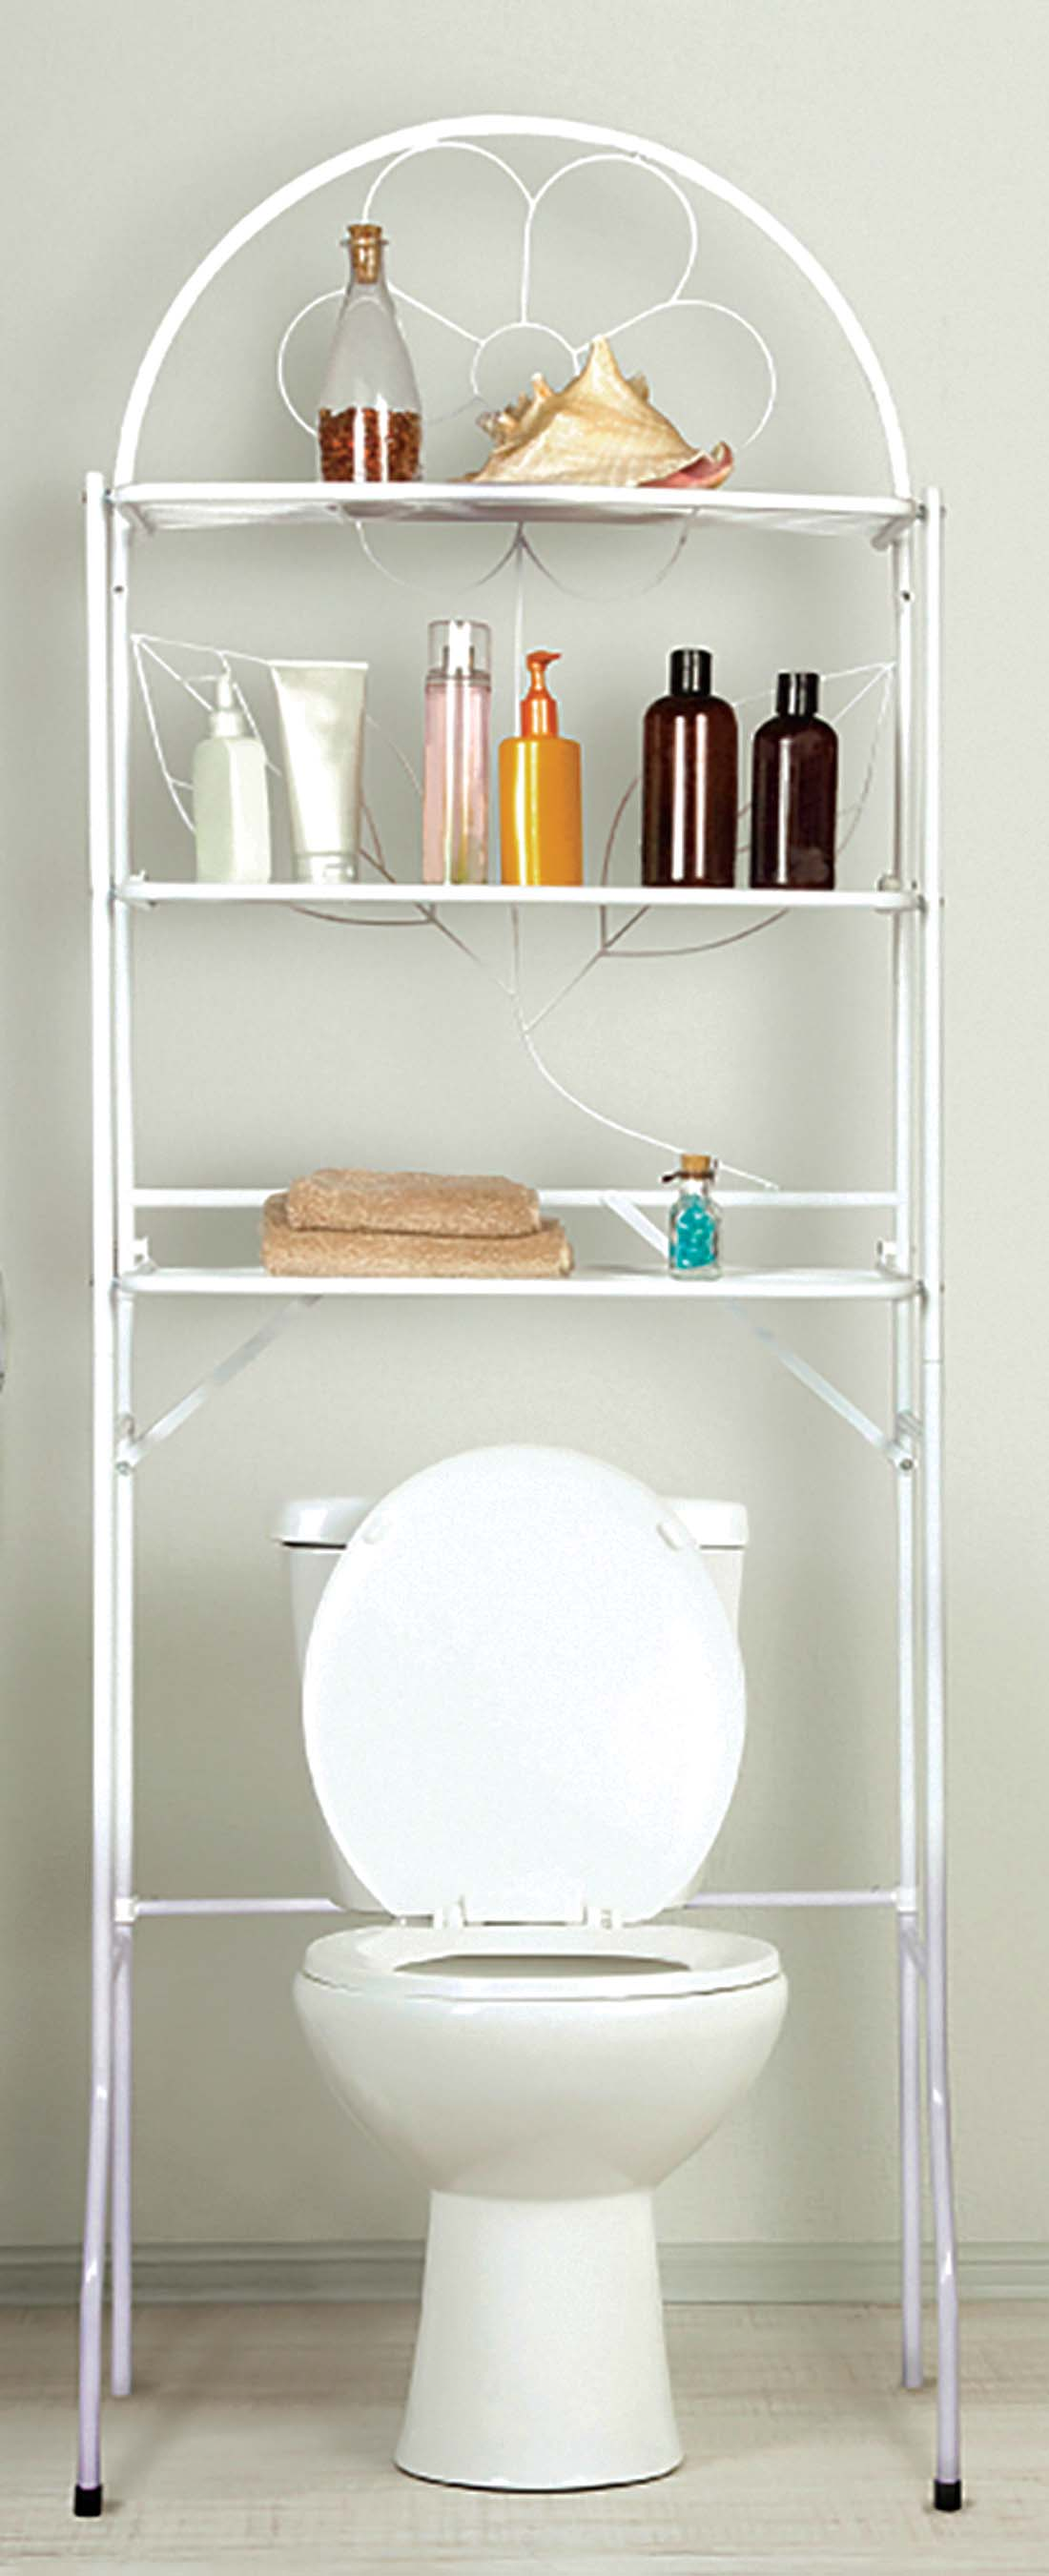 View BATHROOM SPACE SAVER 3 SHELF 24.5X14X68.71 INCHES WHITE